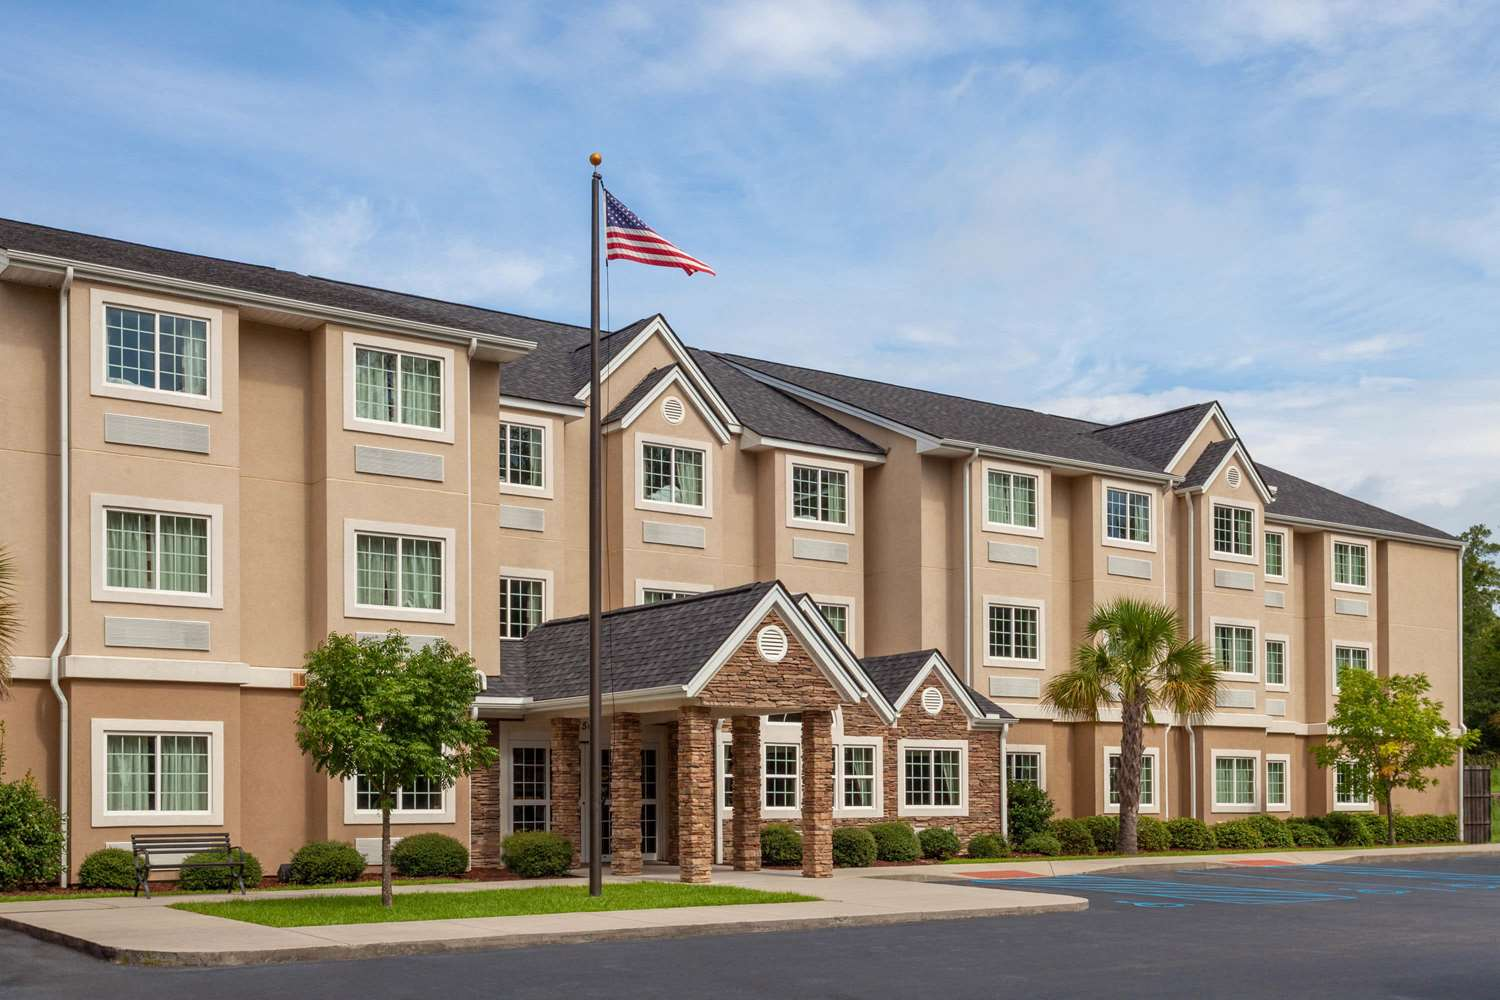 Cheap Hotels In Columbia Sc Near Fort Jackson